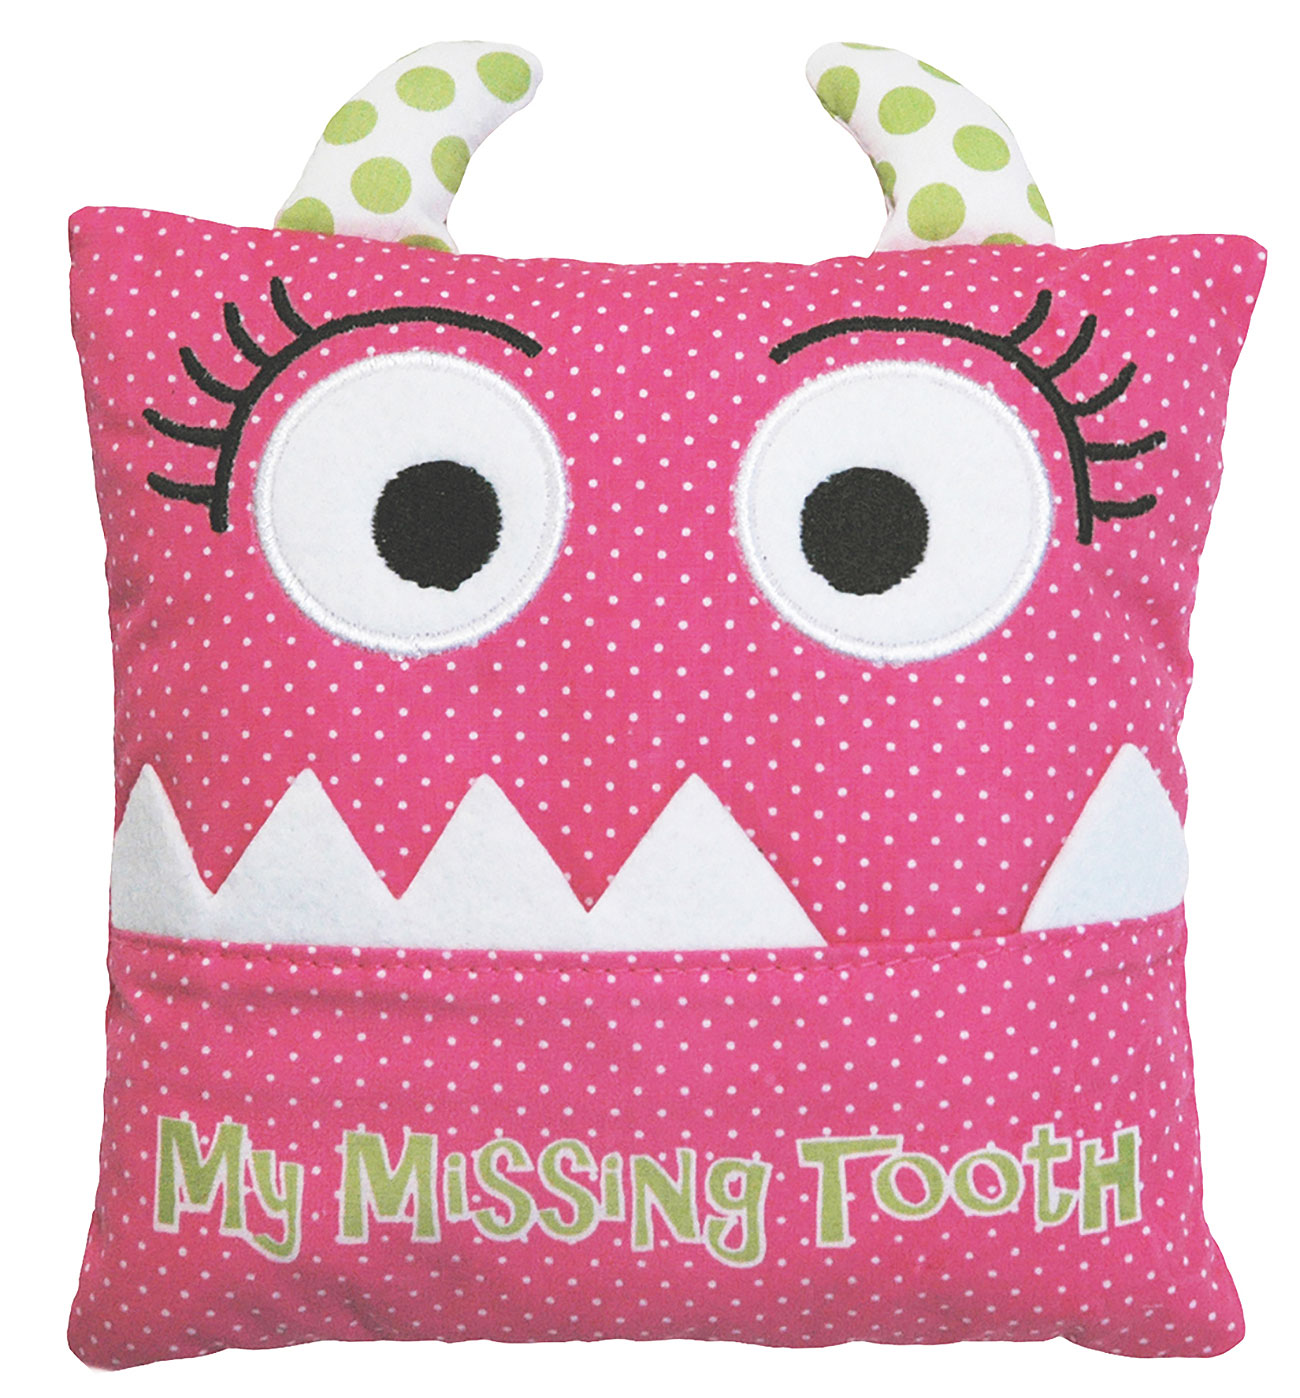 Alma's Designs Tooth Fairy Pillow - Cute Pink Monster Face - 5 by 5 Inches